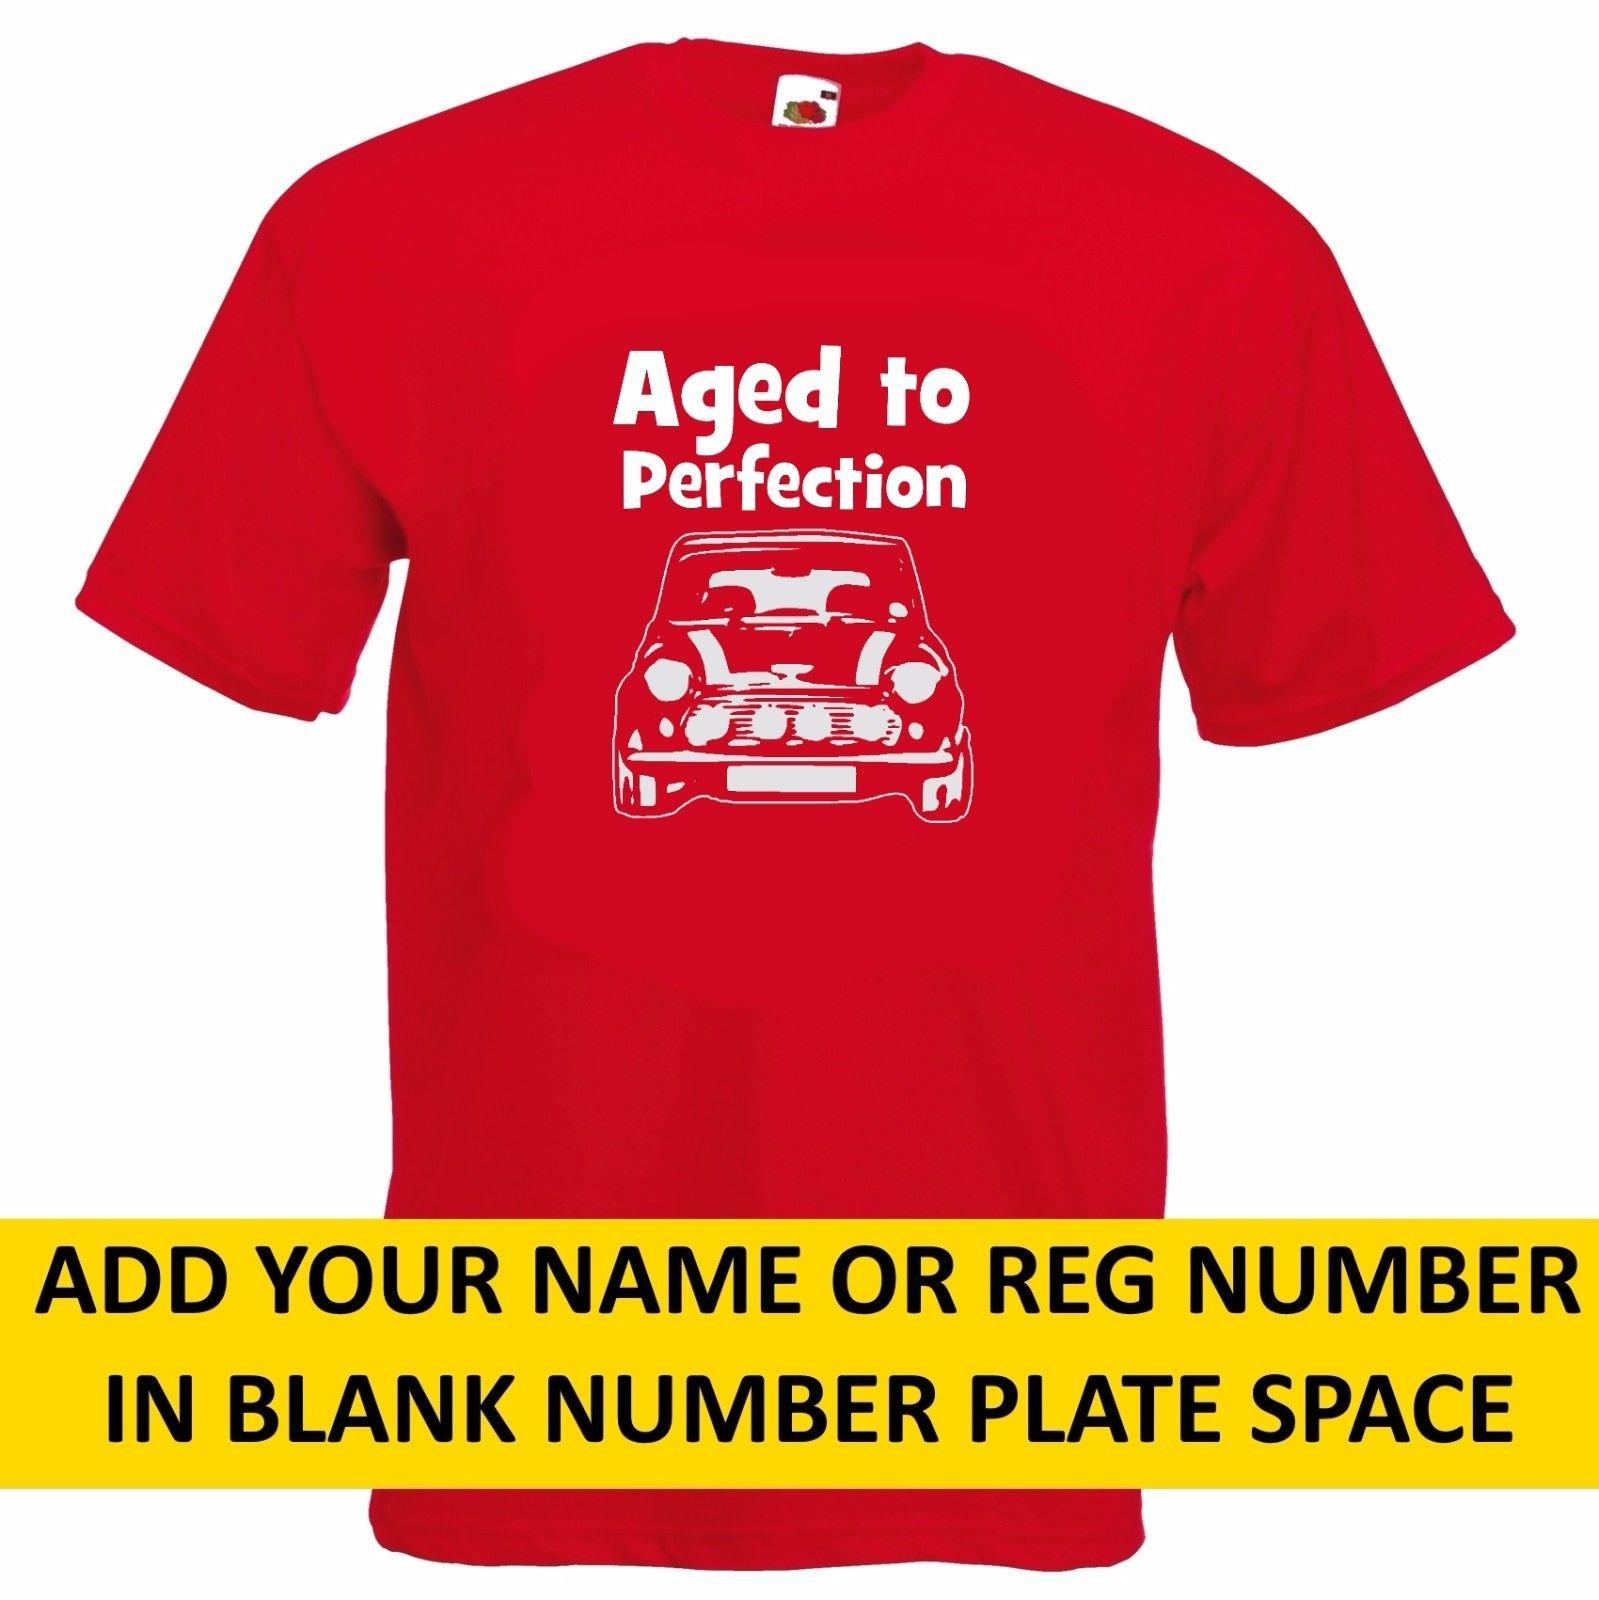 45c4fdab1 MINI Cooper T Shirt Car Old Vintage Austin Funny Gift Dad Classic Humor  Aged Funny Unisex Casual T Sirt T Shirt Sites From Fantees, $12.96|  DHgate.Com